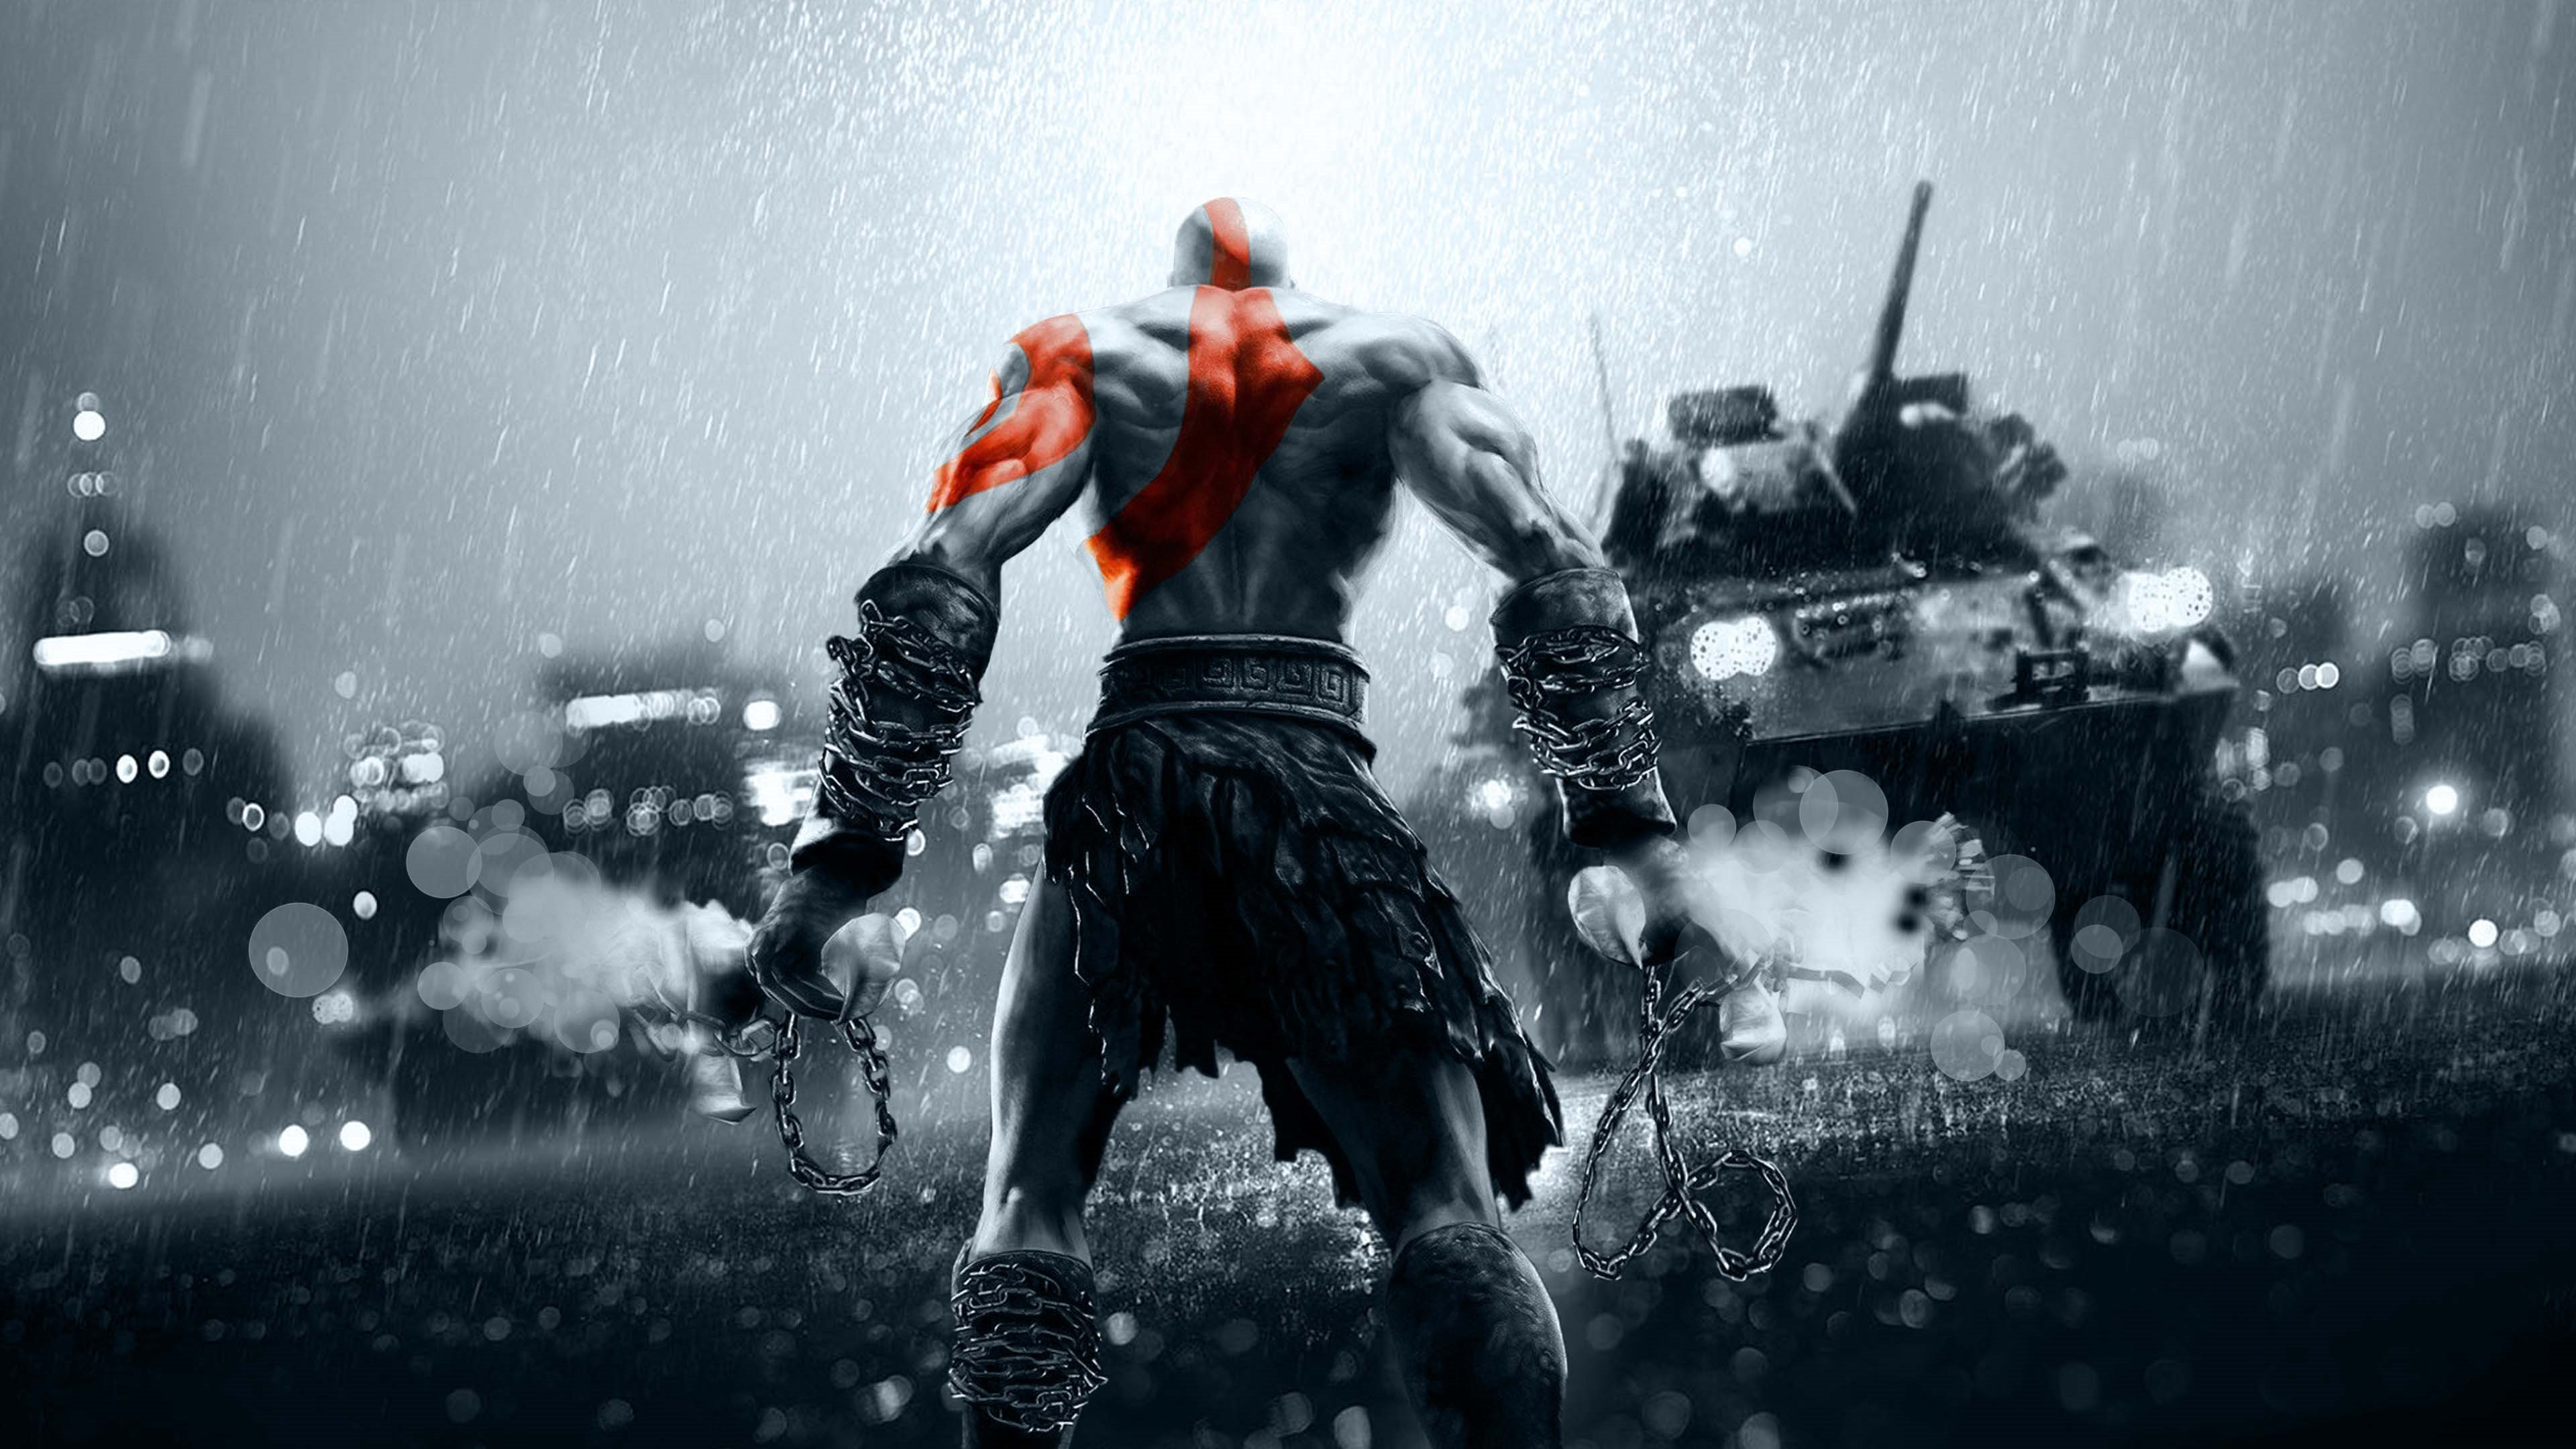 Asus pb287q monitor 2014 4k uhd wallpaper competition page 64 - God Of War 4k 2014 Wallpapers Hd Wallpapers